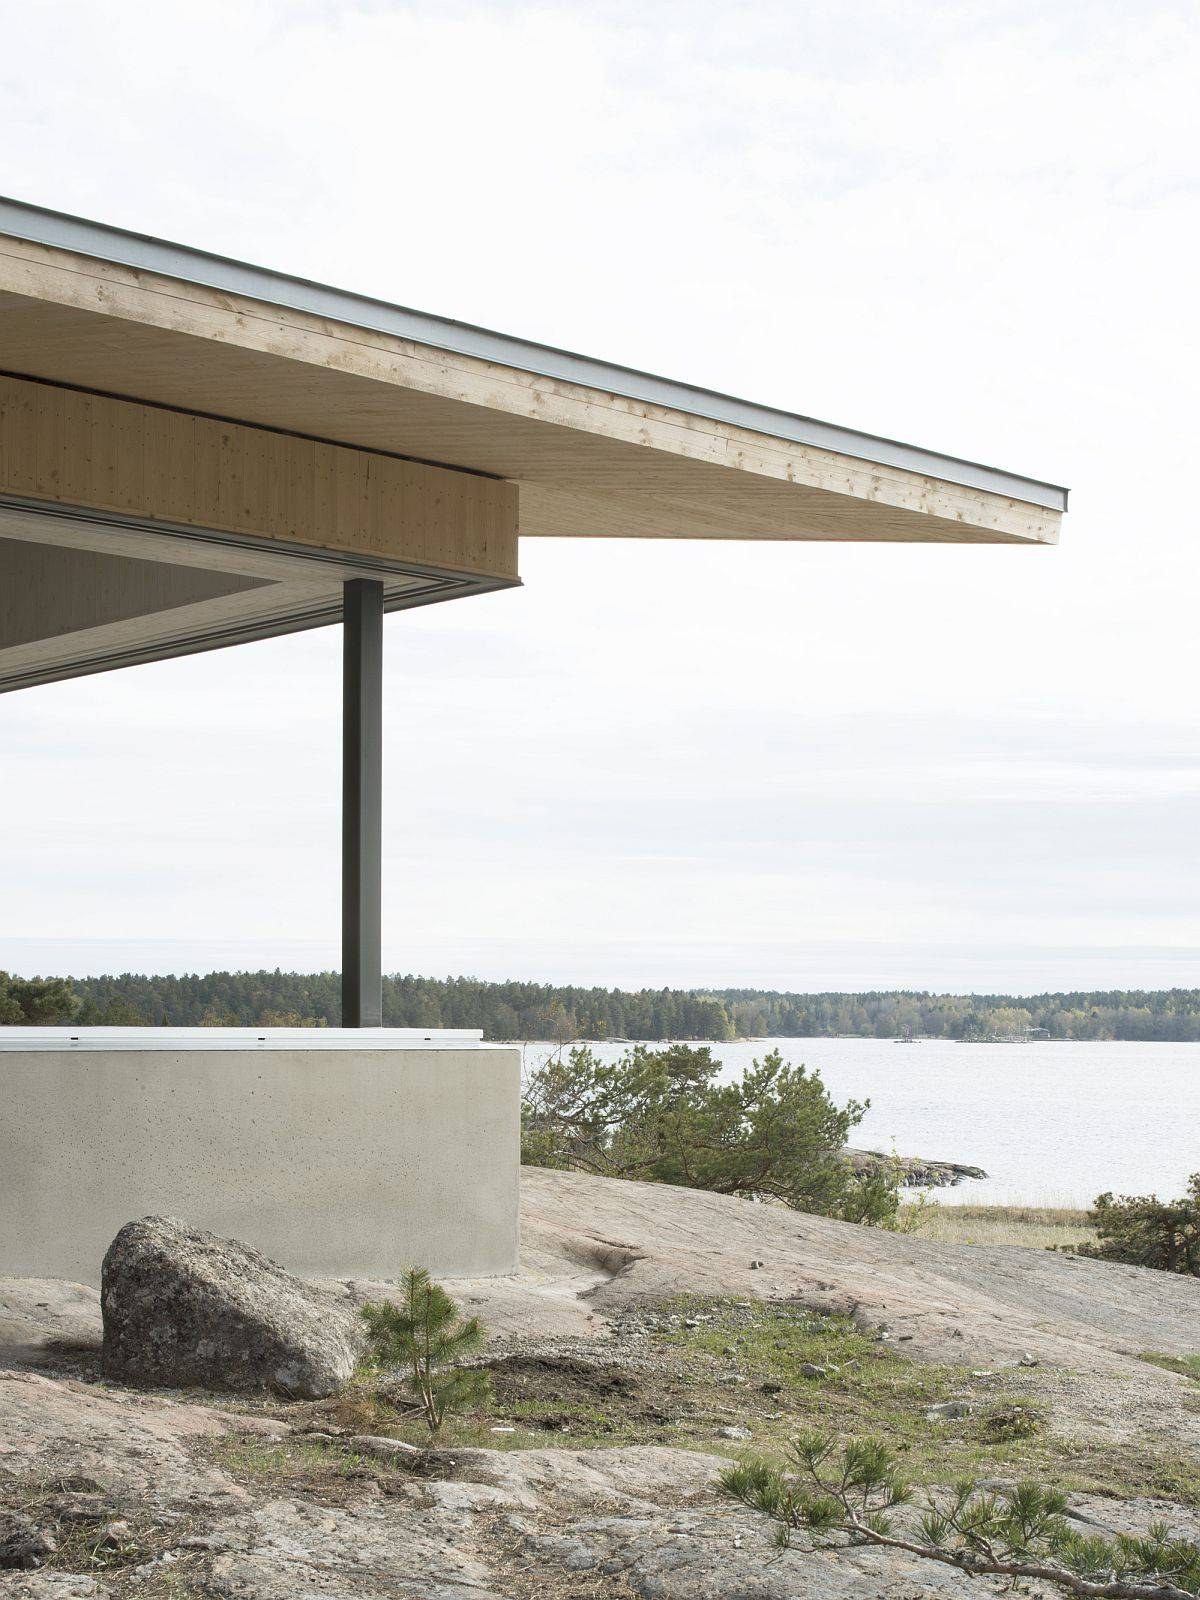 Concrete plinth around teh house creates a natural border with roof extending above it